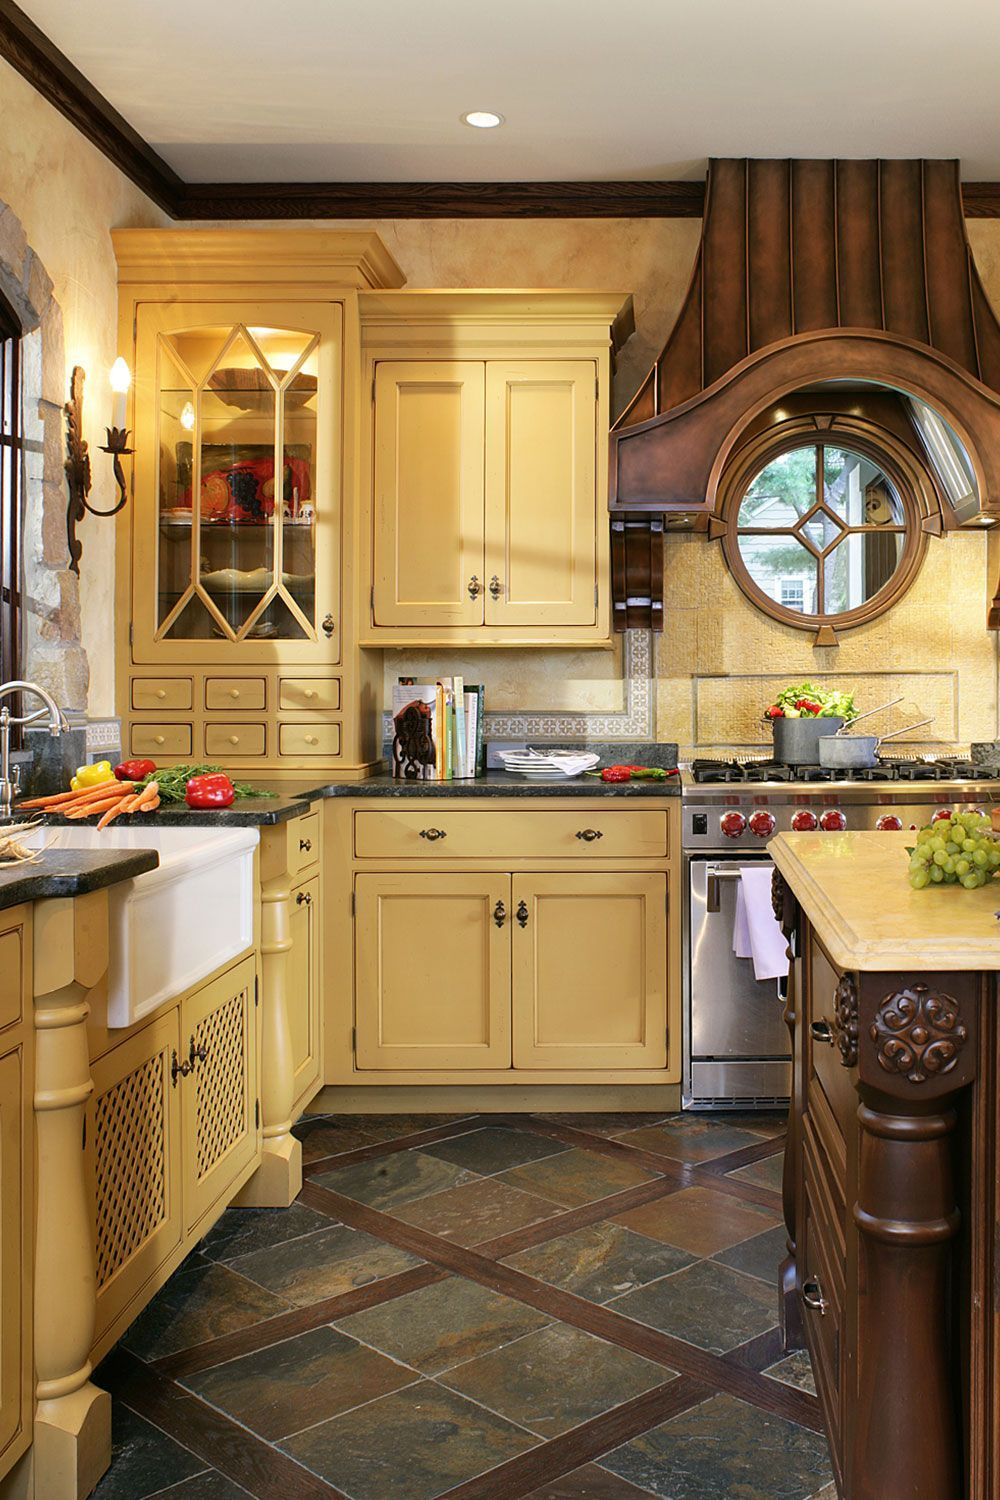 21 yellow kitchen ideas to brighten up your home yellow kitchen walls kitchen design small on kitchen remodel yellow walls id=51705